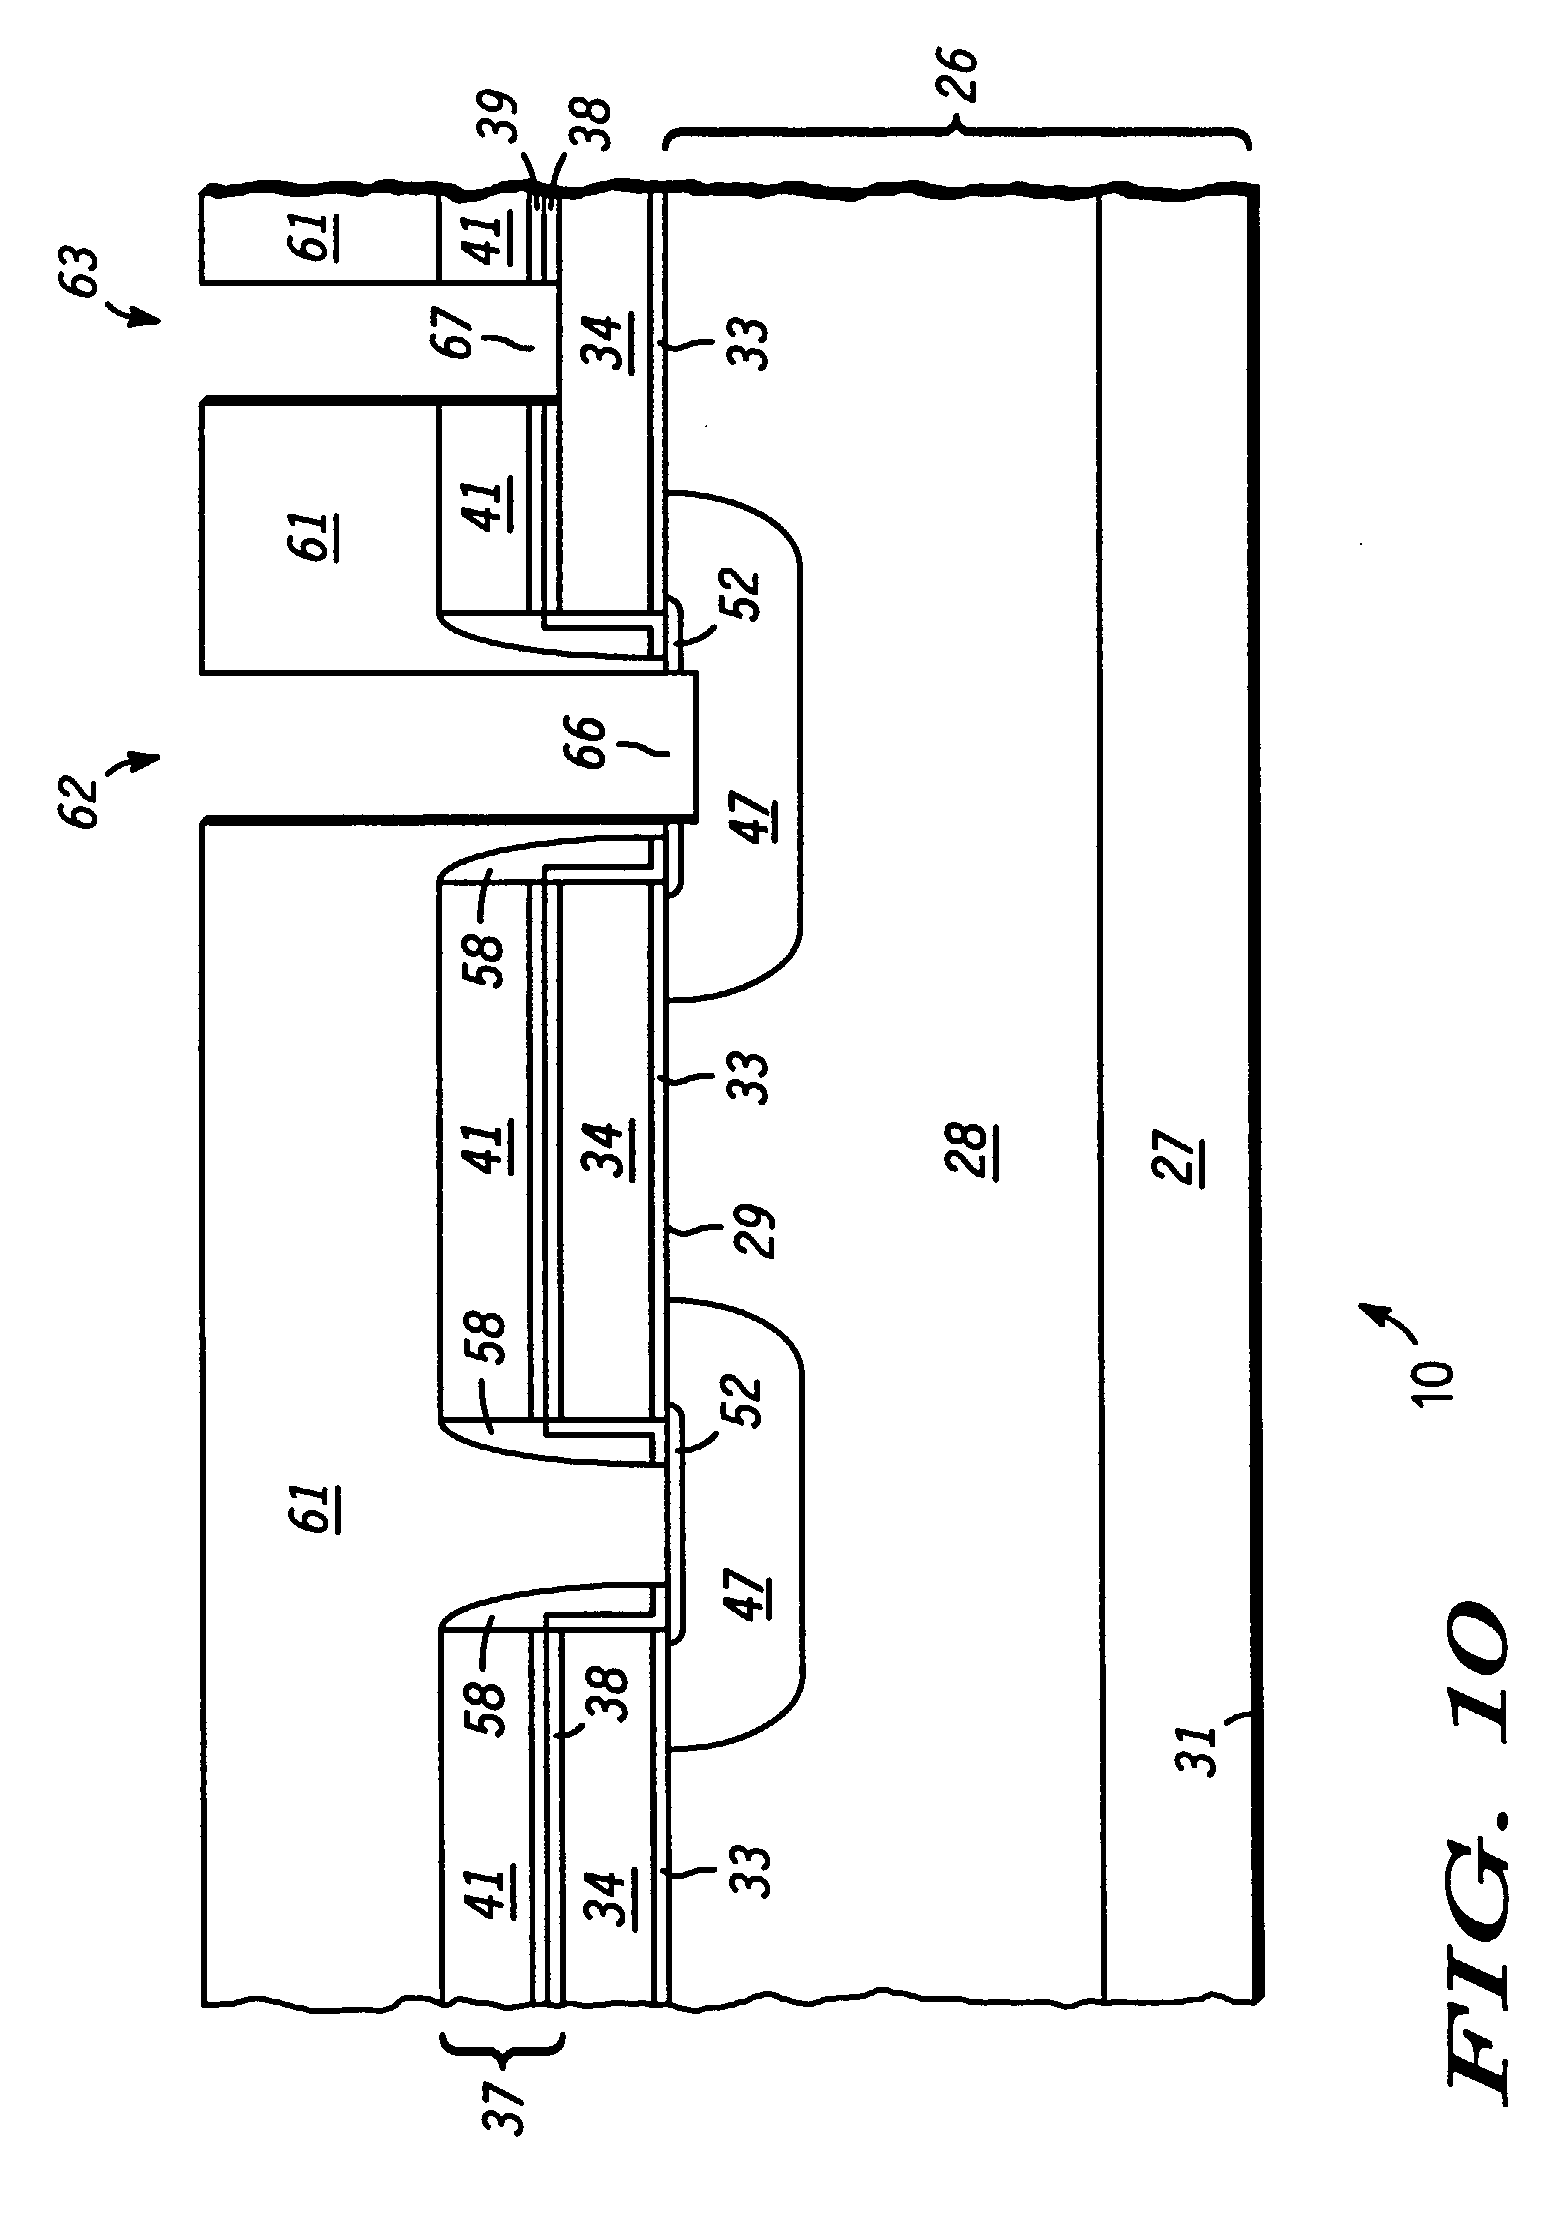 method of manufacturing vdmos with a termination structure